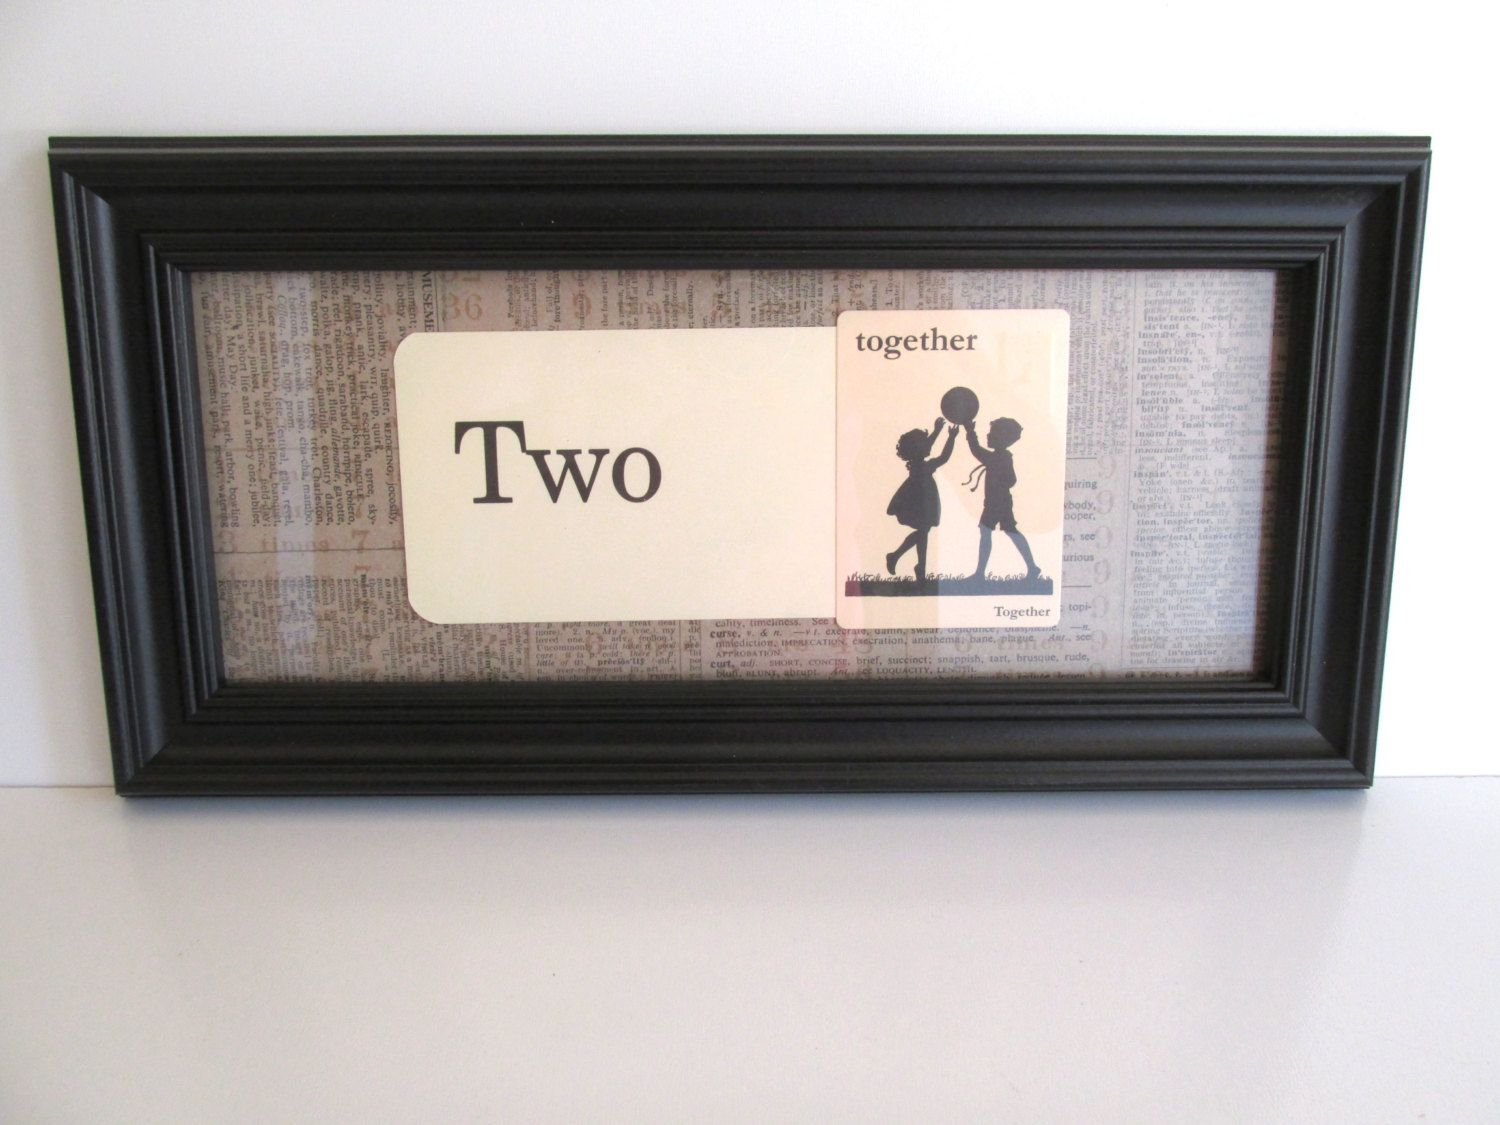 Vintage Framed Flash Cards Two Together Black Frame Home Decor Wedding Love by…